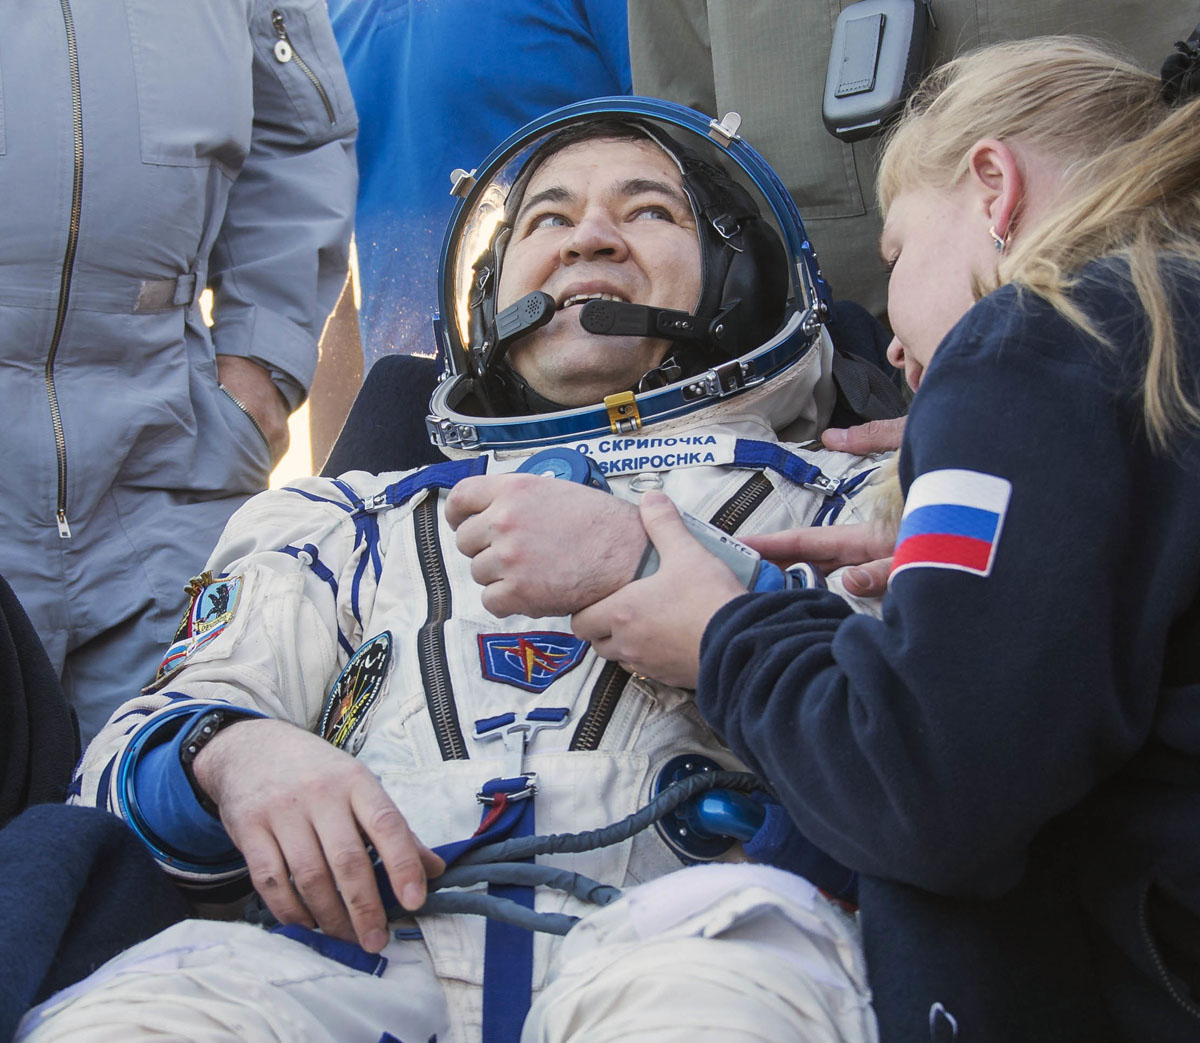 Back to Earth: Crew from the International Space Station land in Kazakhstan